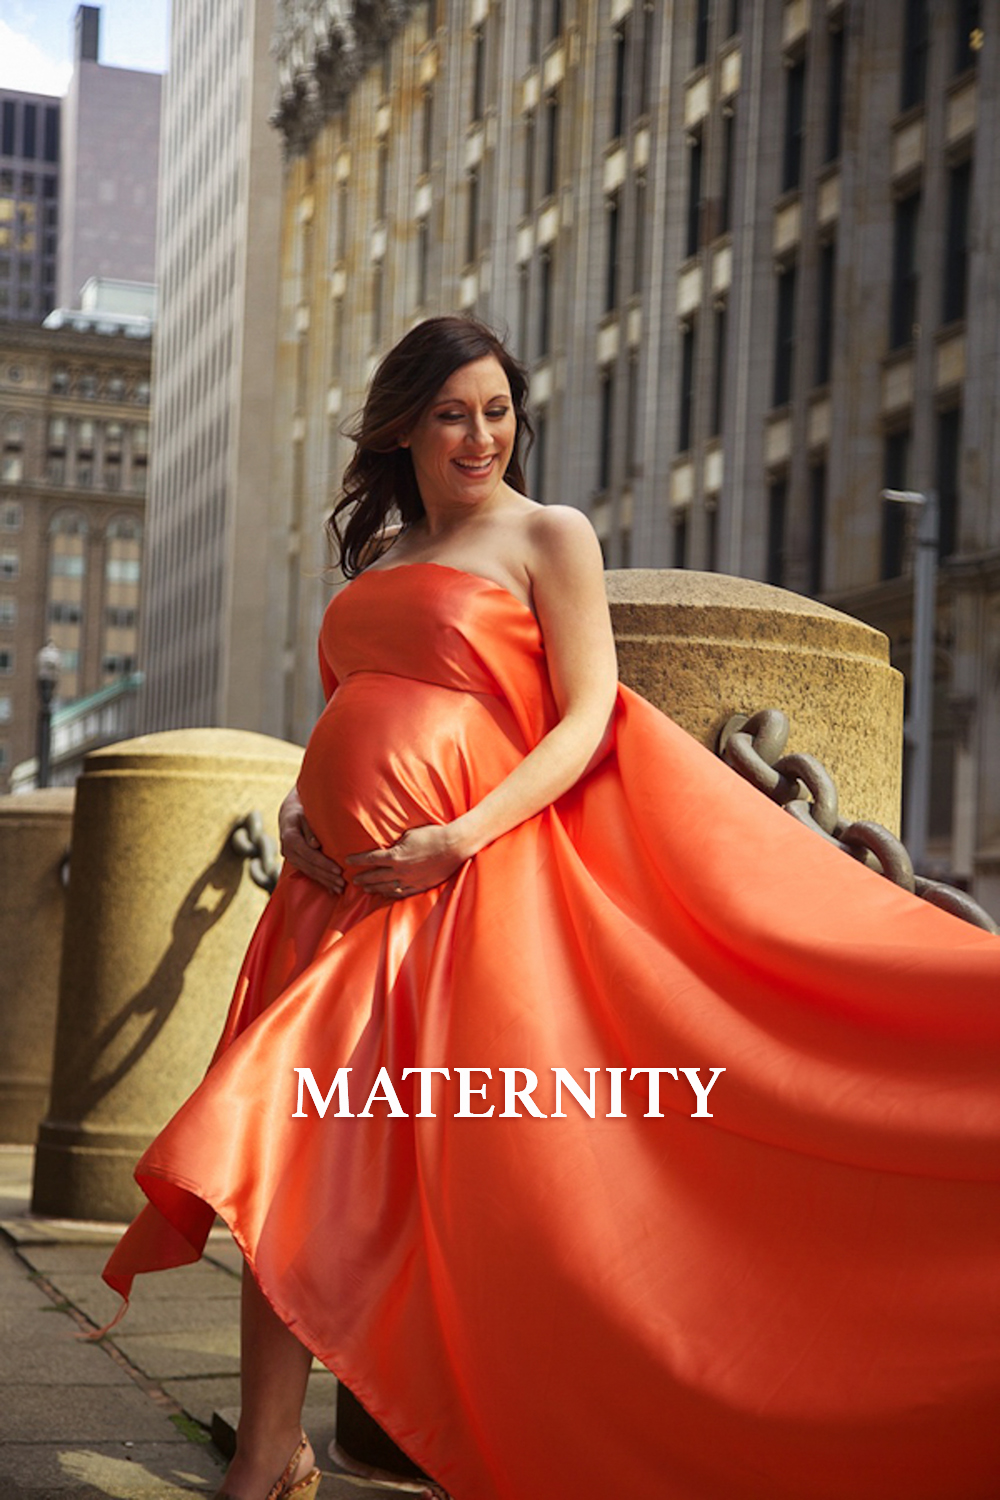 pittsburgh-maternity-photography.jpg